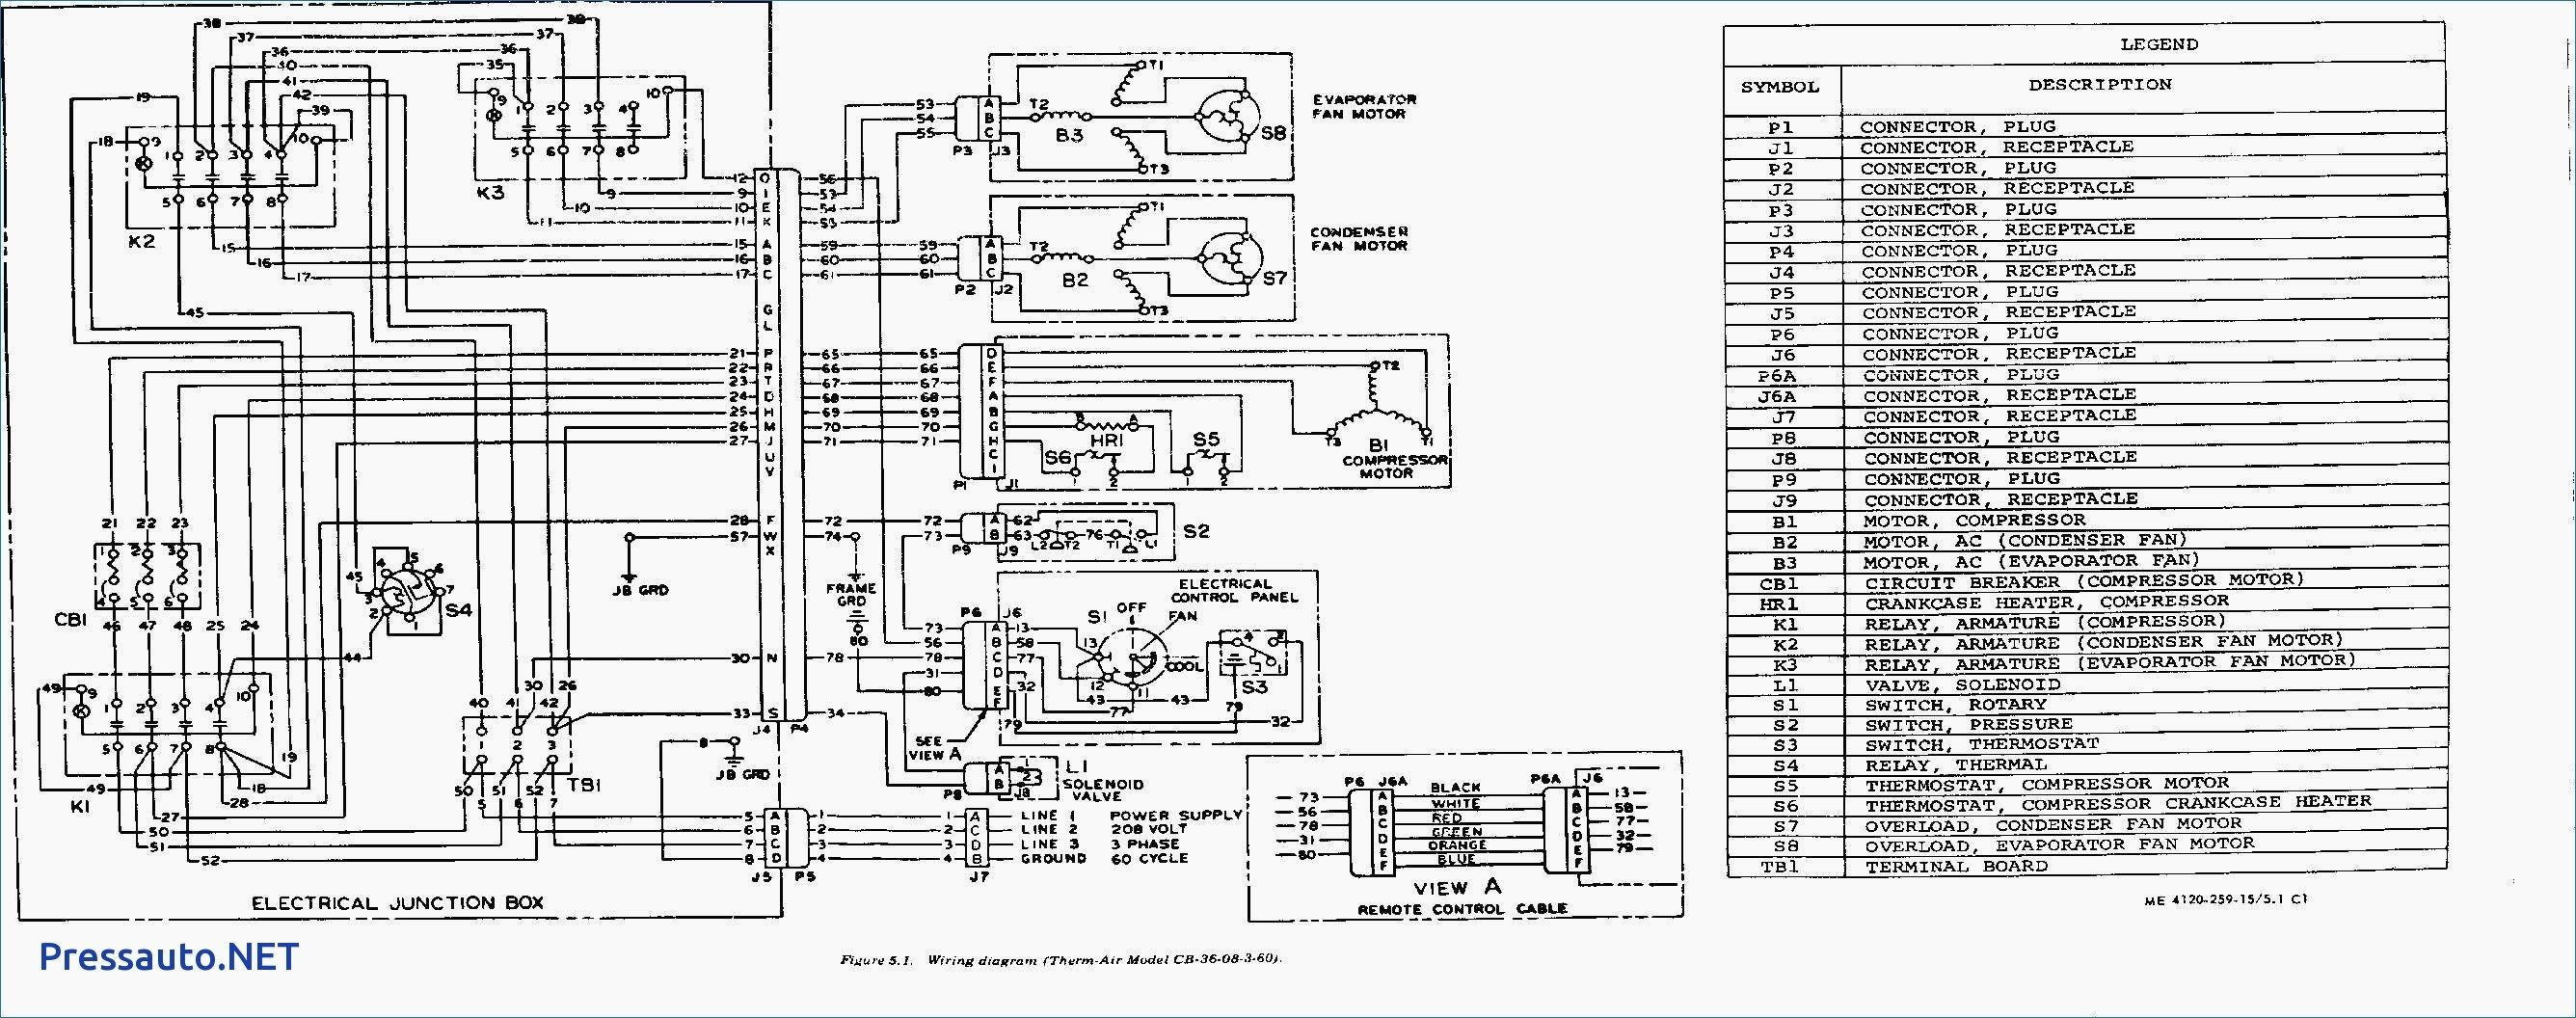 small resolution of trane wiring diagram thoritsolutions com and rooftop unit on trane pertaining to trane wiring diagram